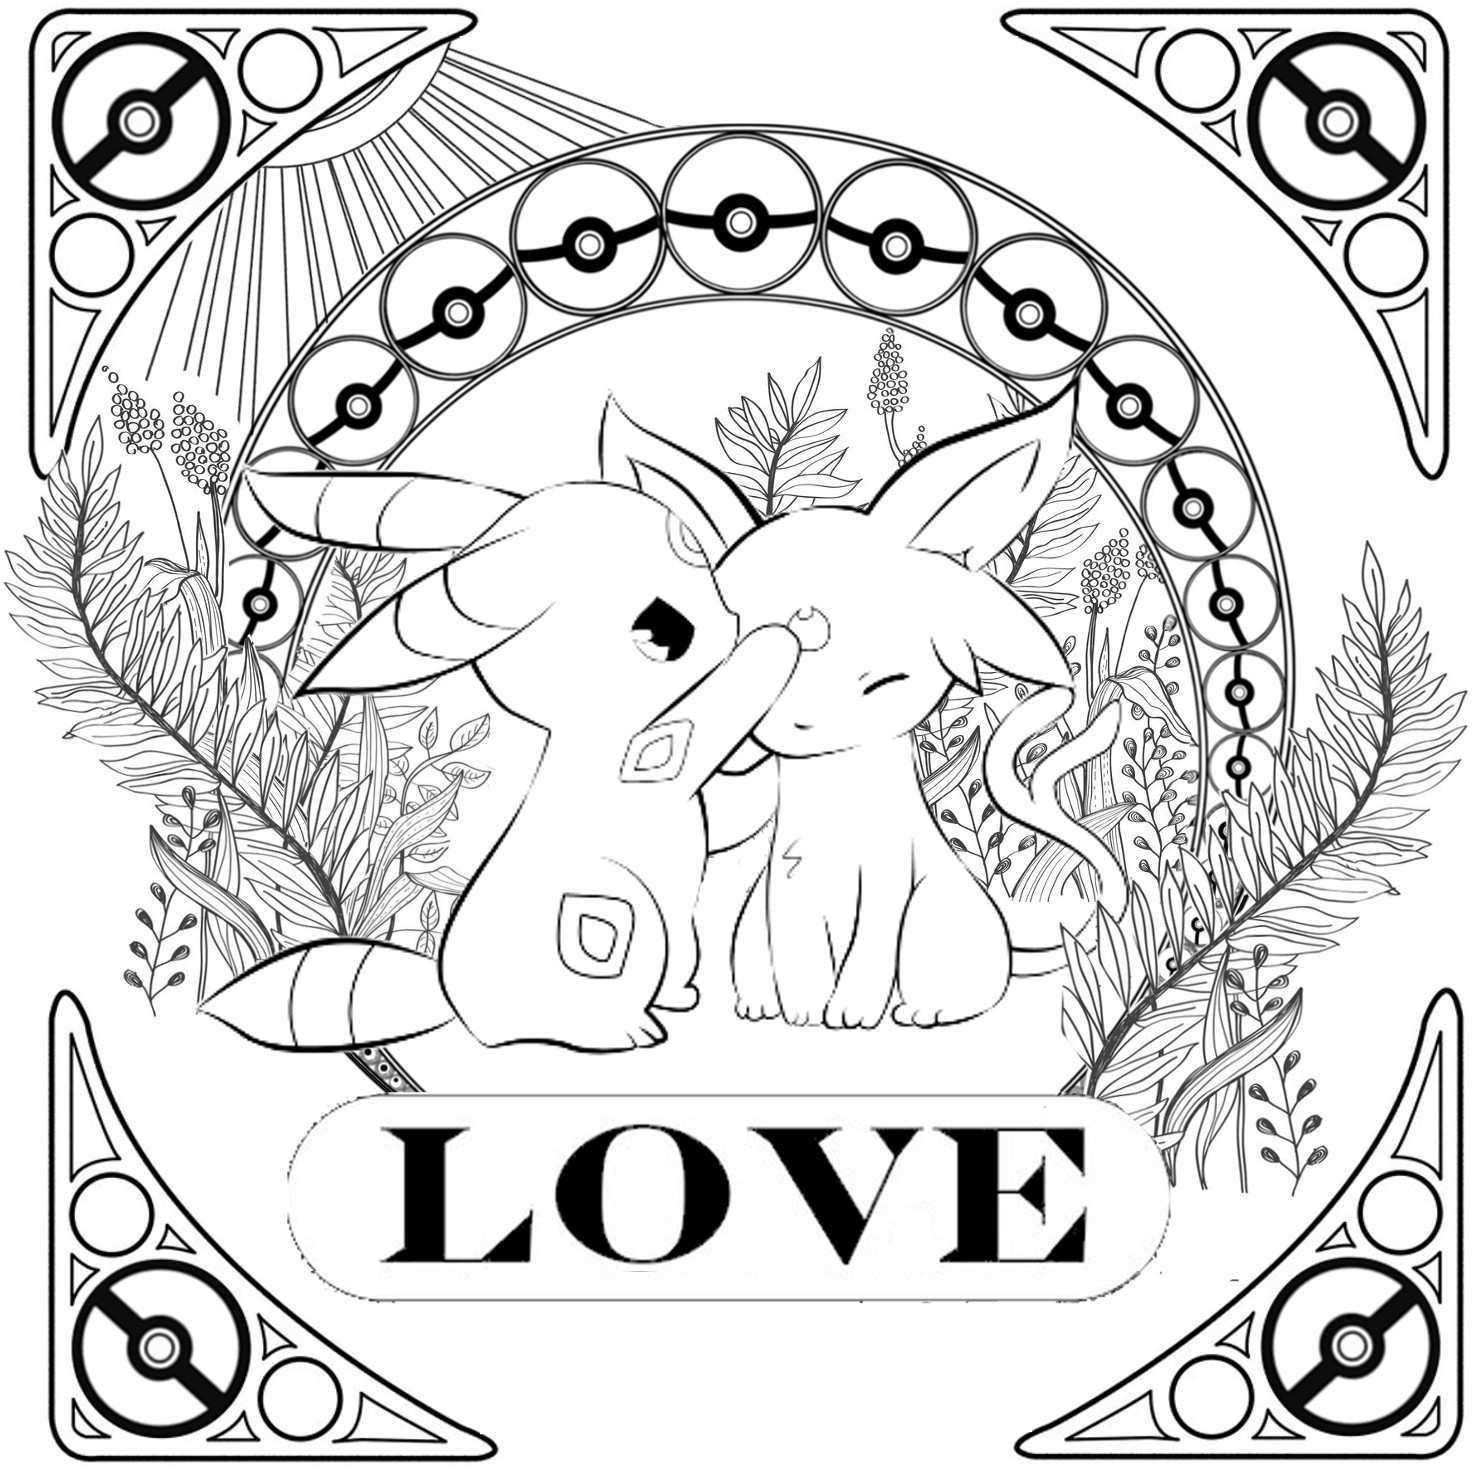 Eevee evolutions coloring pages eevee coloring pages best of pokemon coloriage joli pokemon eevee